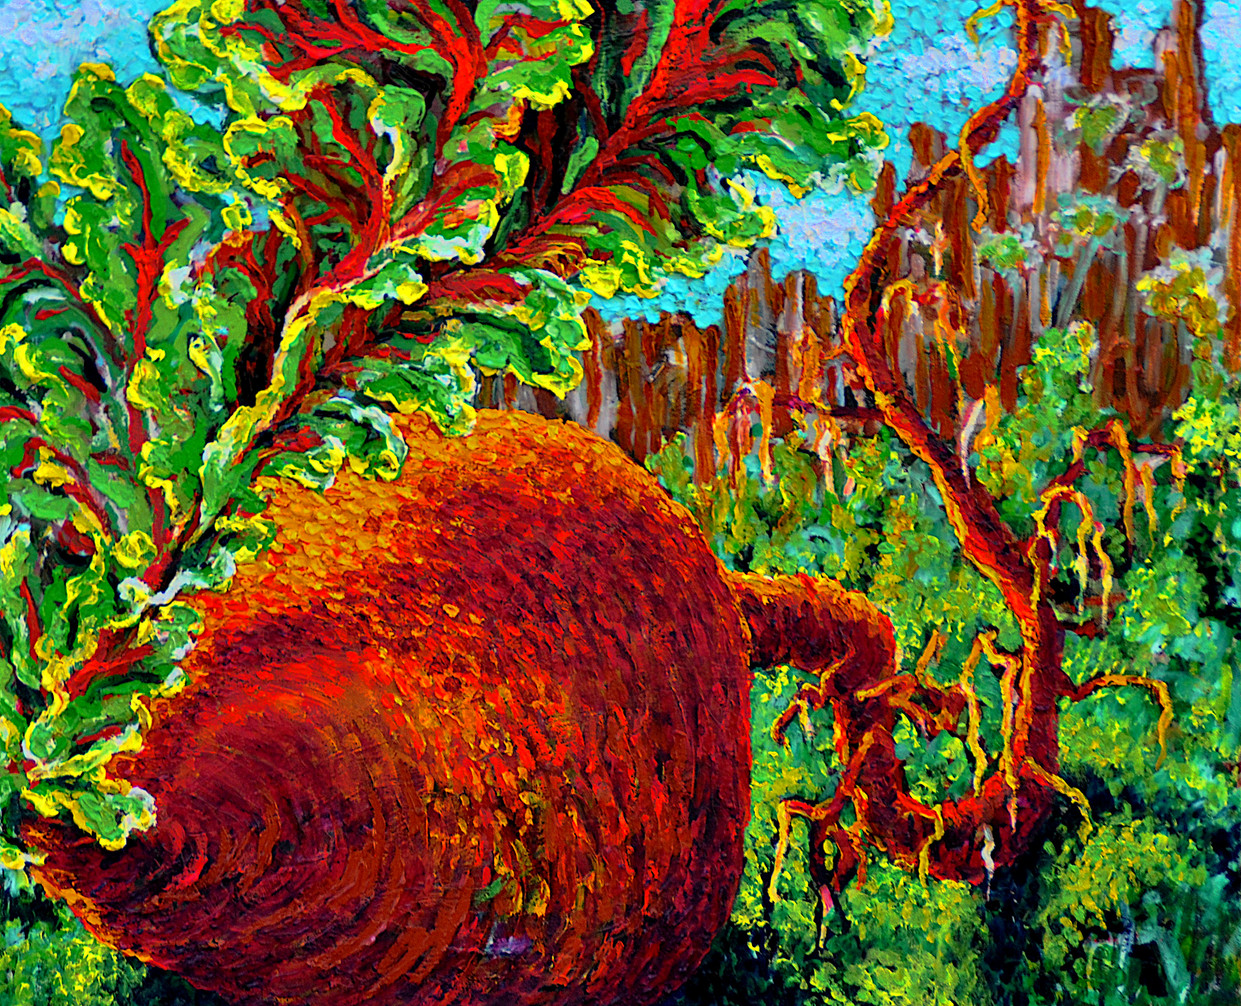 The Beet $800, 20 x 24 in. Oil on Canvas